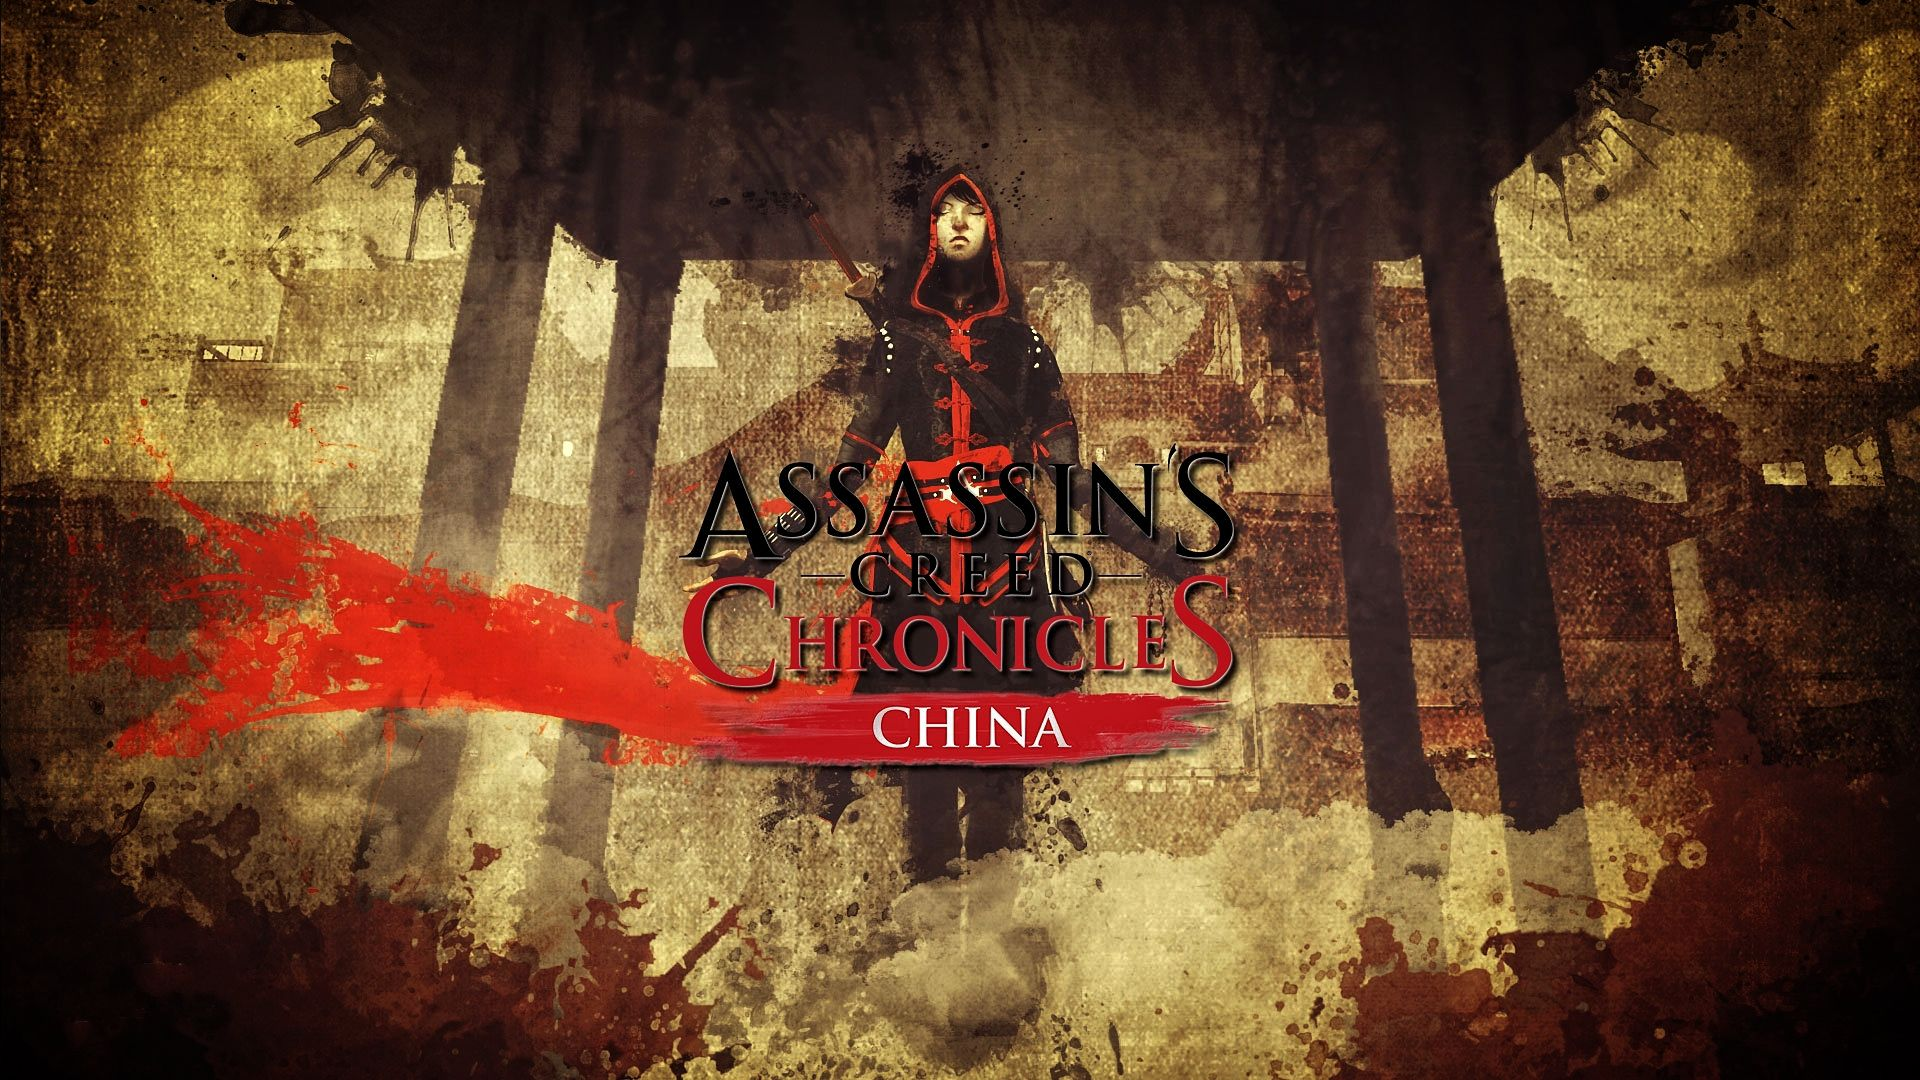 Assassin's Creed Chronicles: China İnceleme